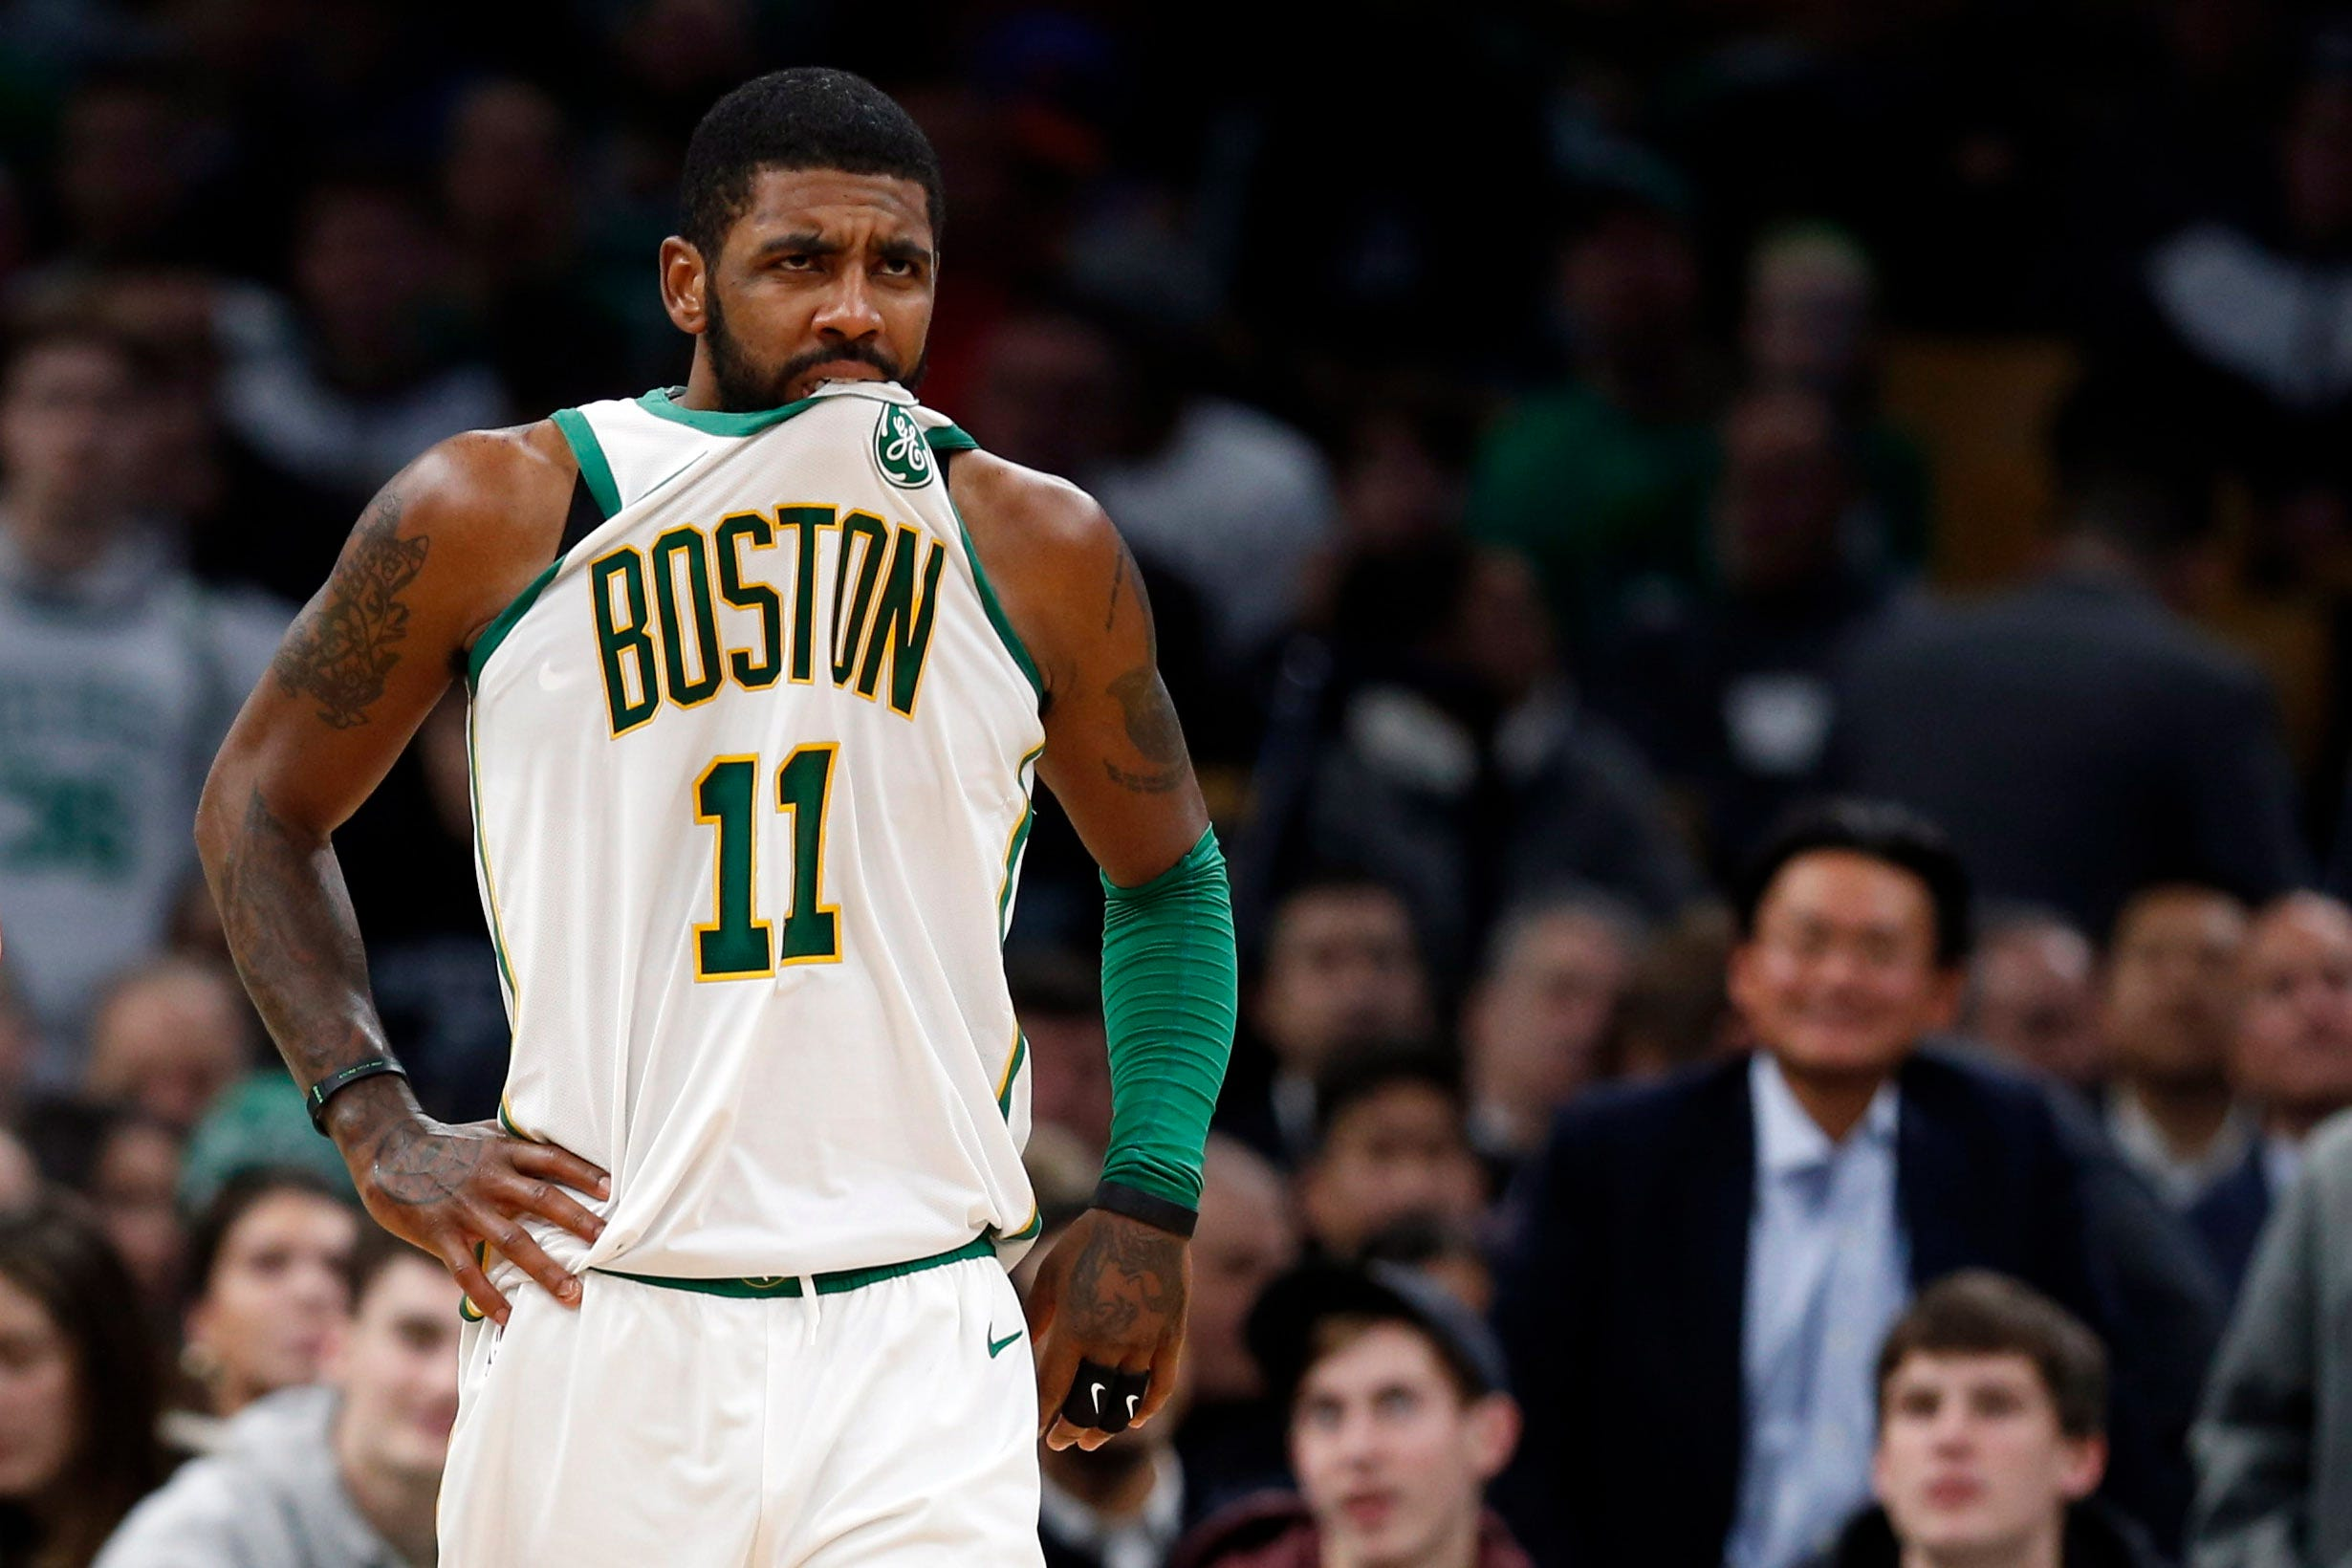 Boston Celtics guard Kyrie Irving reacts during the second half of a game against the New York Knicks at TD Garden.